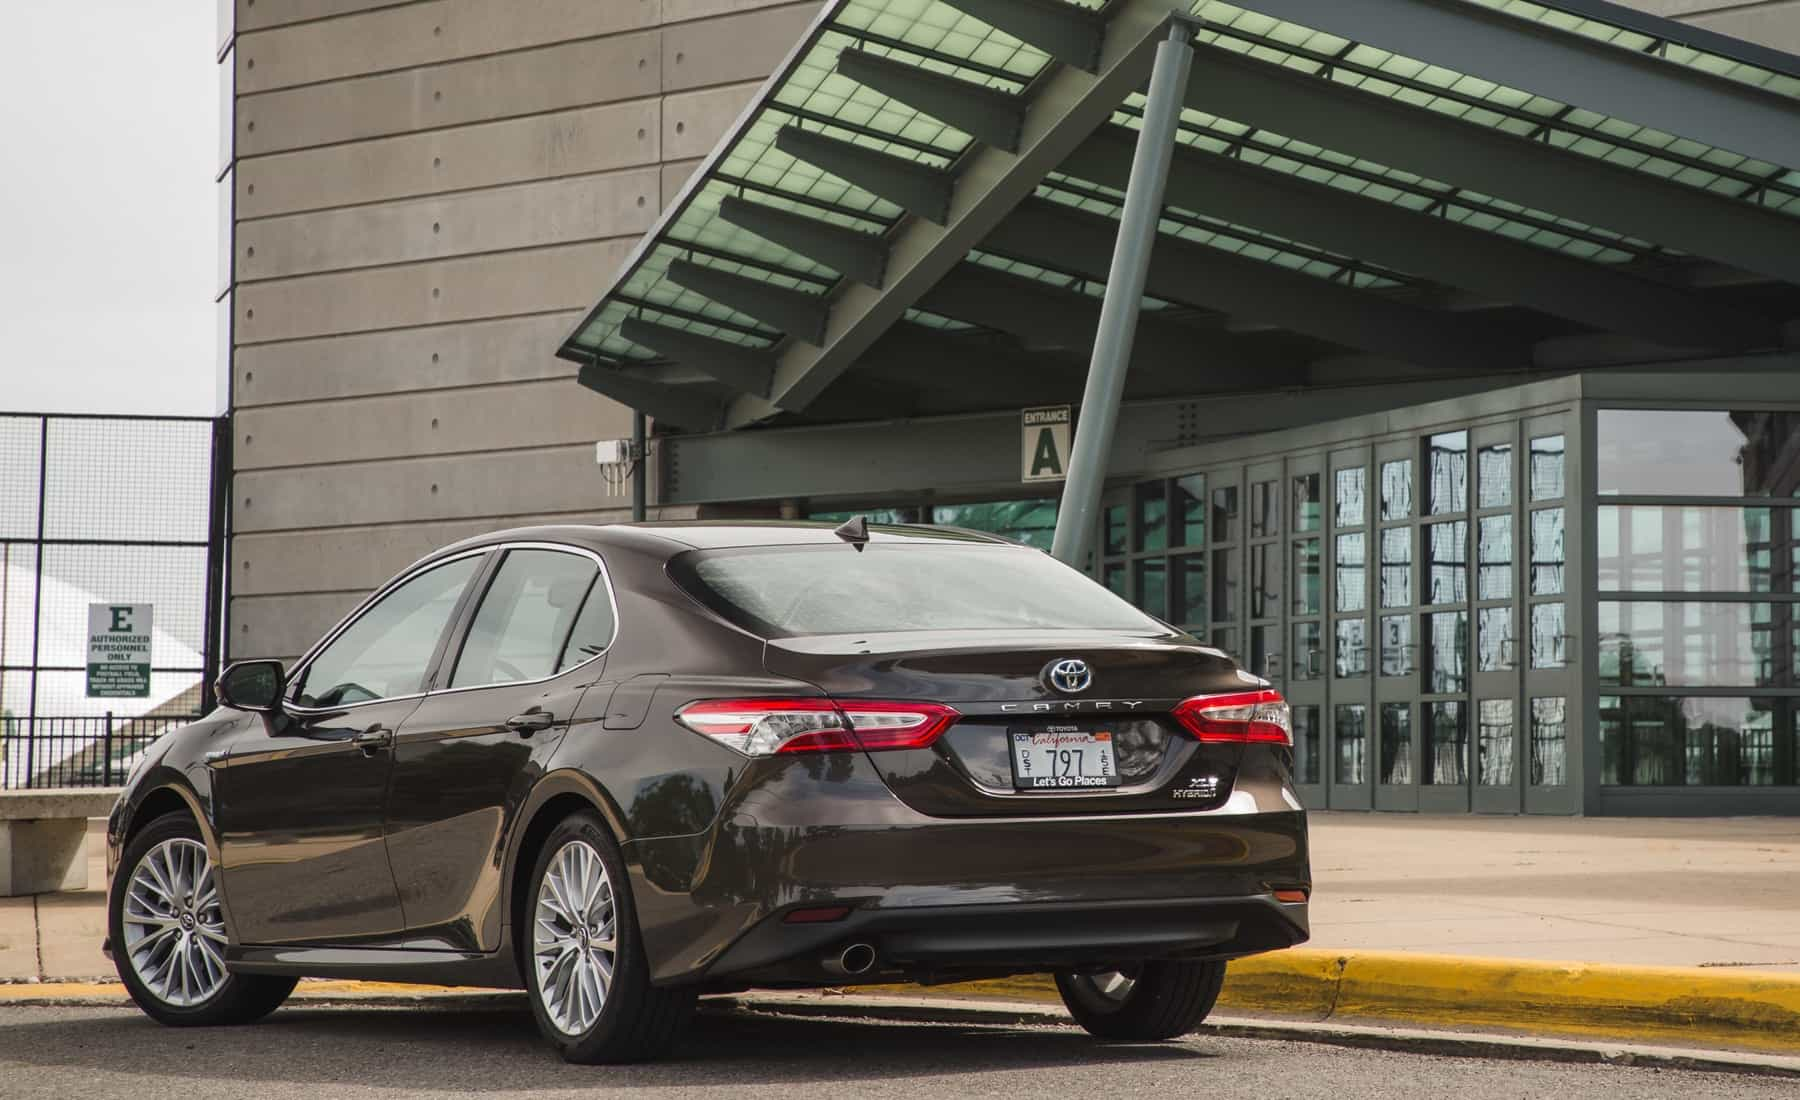 2018 Toyota Camry Hybrid XLE Exterior Rear And Side View (Photo 5 of 41)